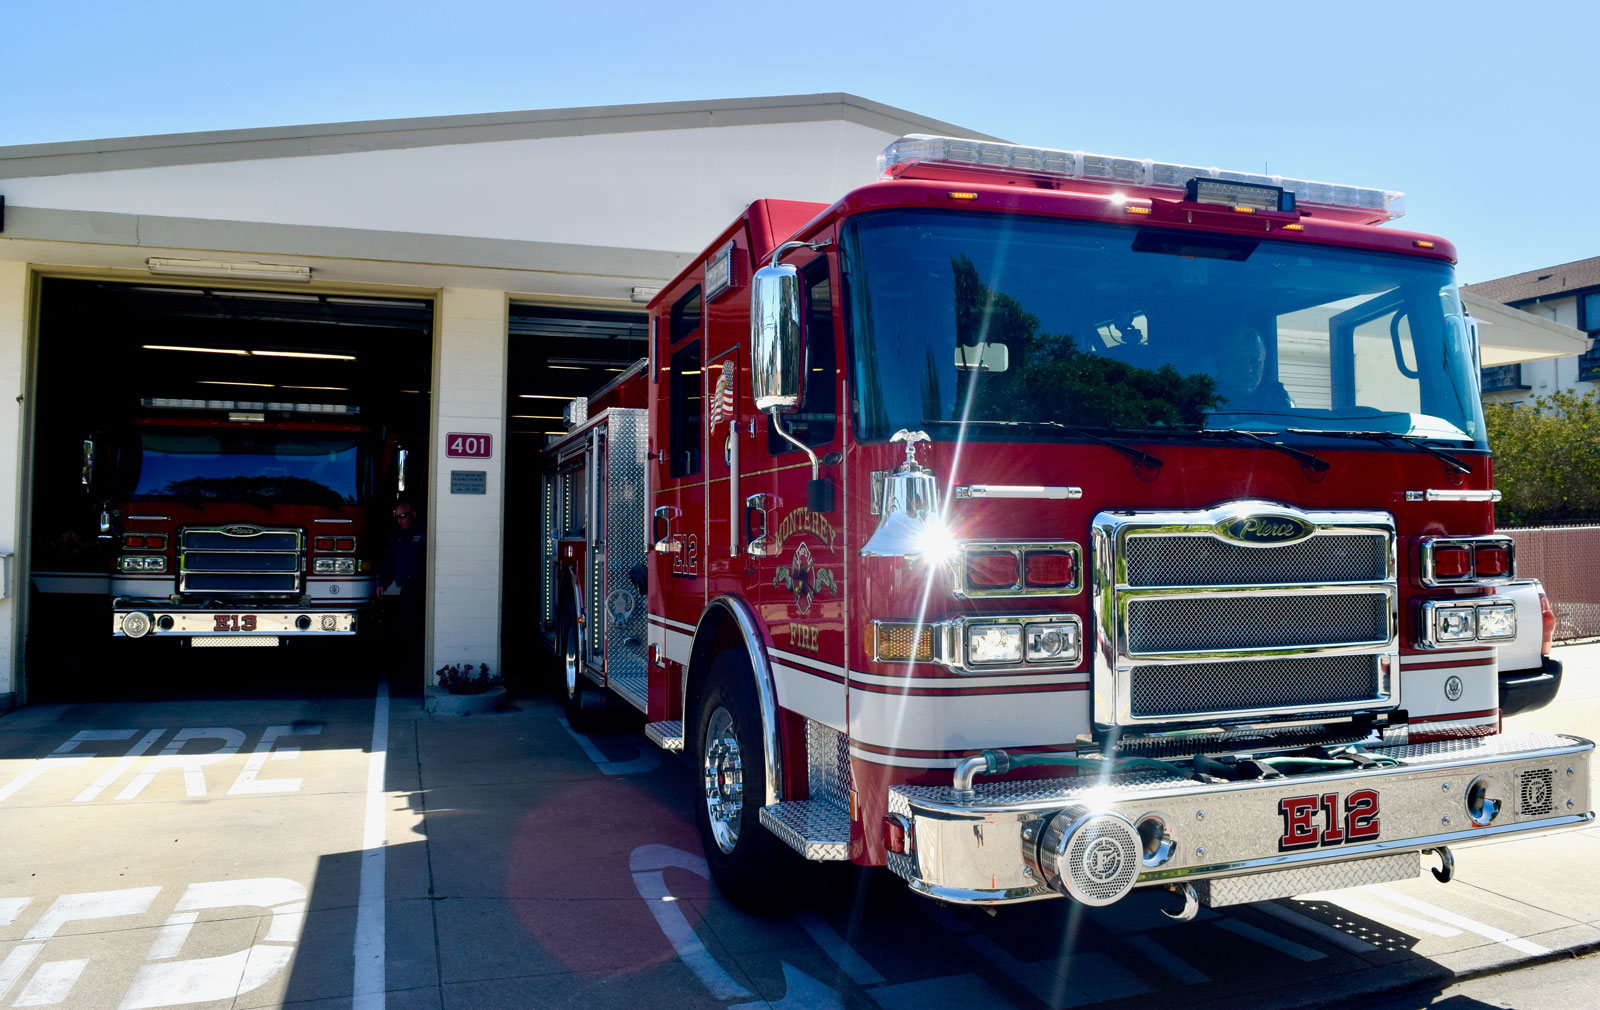 This photo shows new fire engines that are replacing the same type that the City got in 2002.